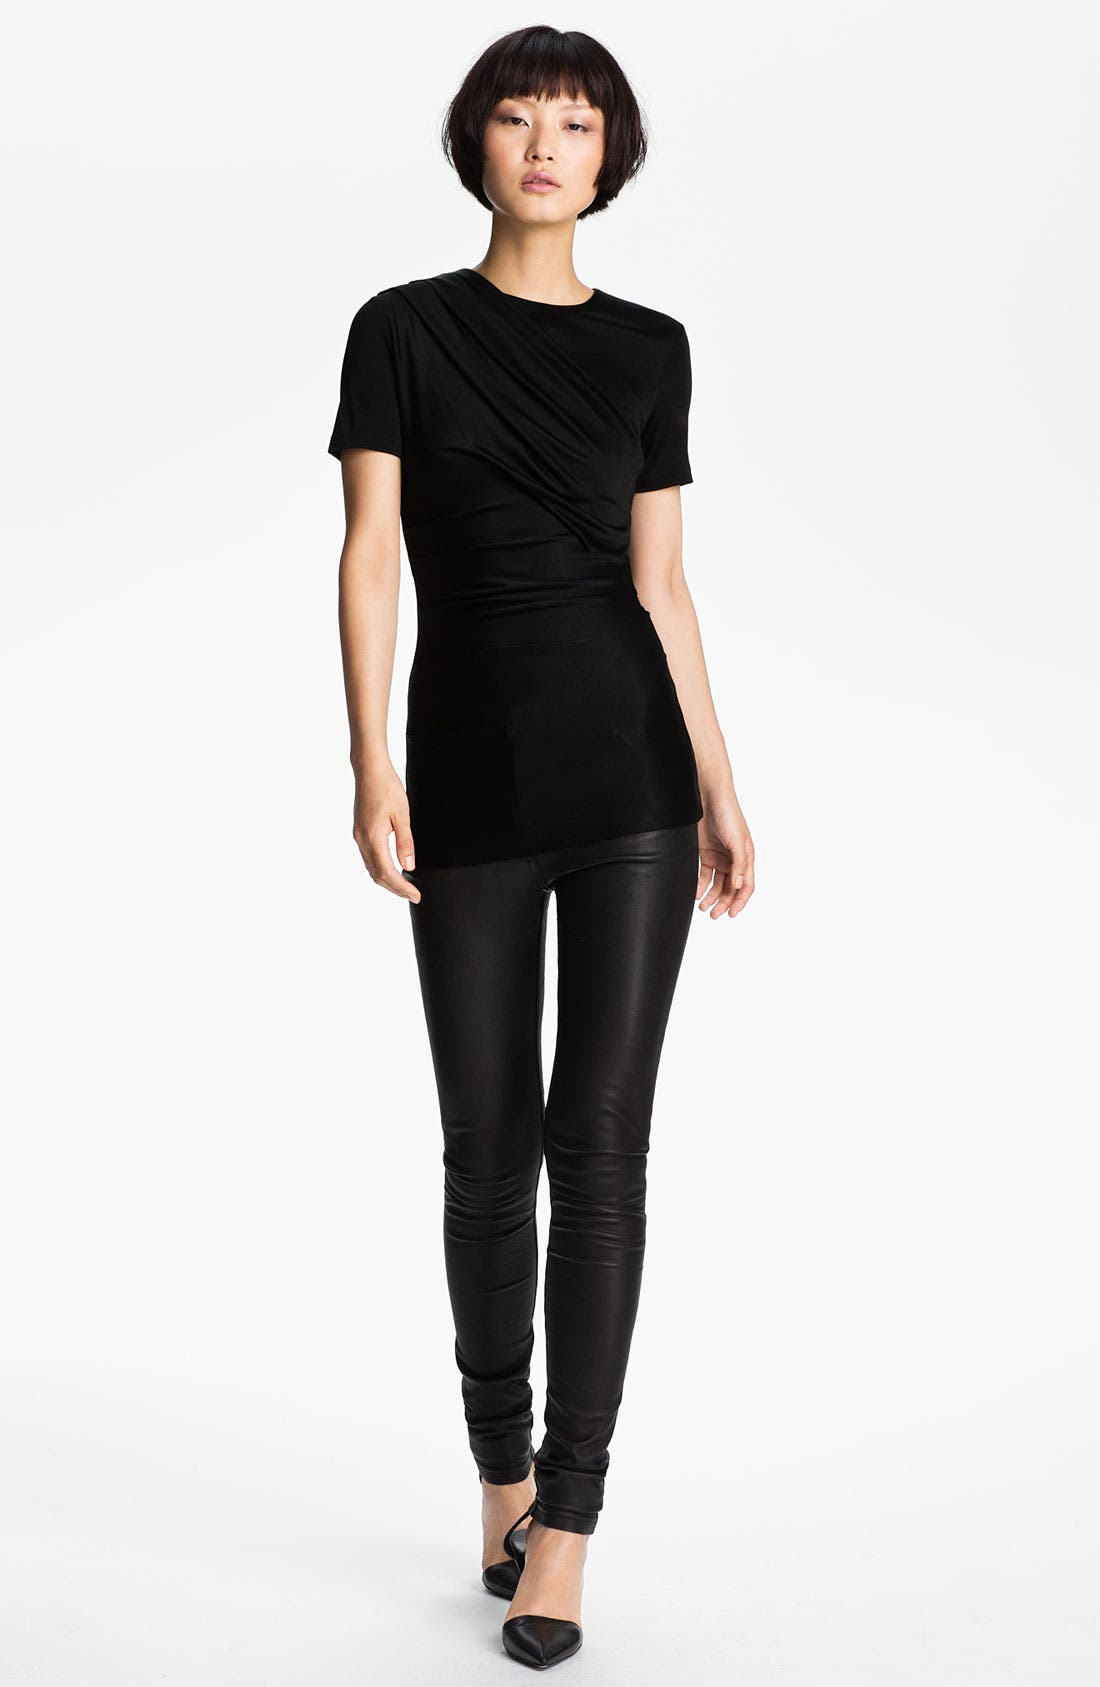 Main Image - T by Alexander Wang Piqué Double Knit Tee